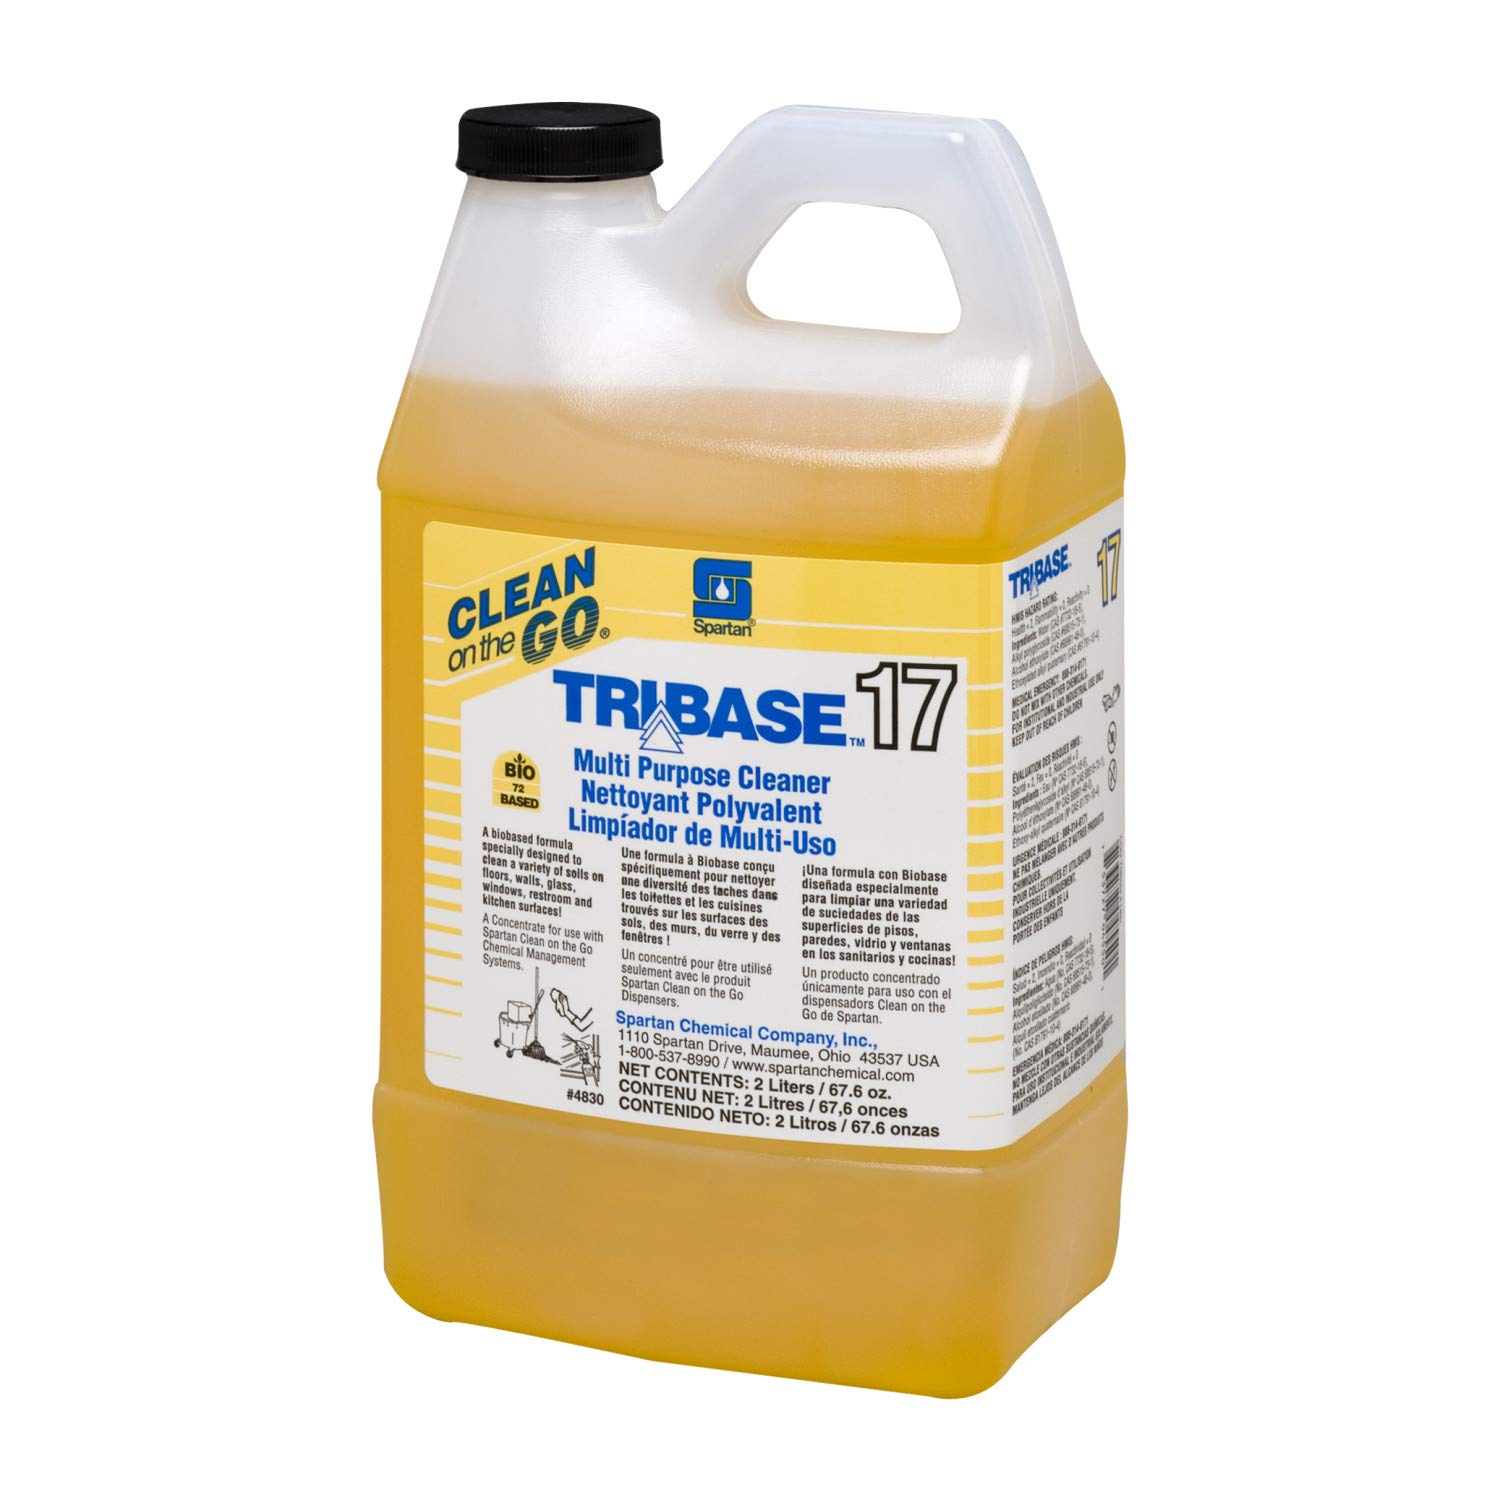 TriBase Multi Purpose Cleaner 17 Clean On The Go Dispensed # 483002, 4-2Liter -(1 CASE) by Spartan Chemical